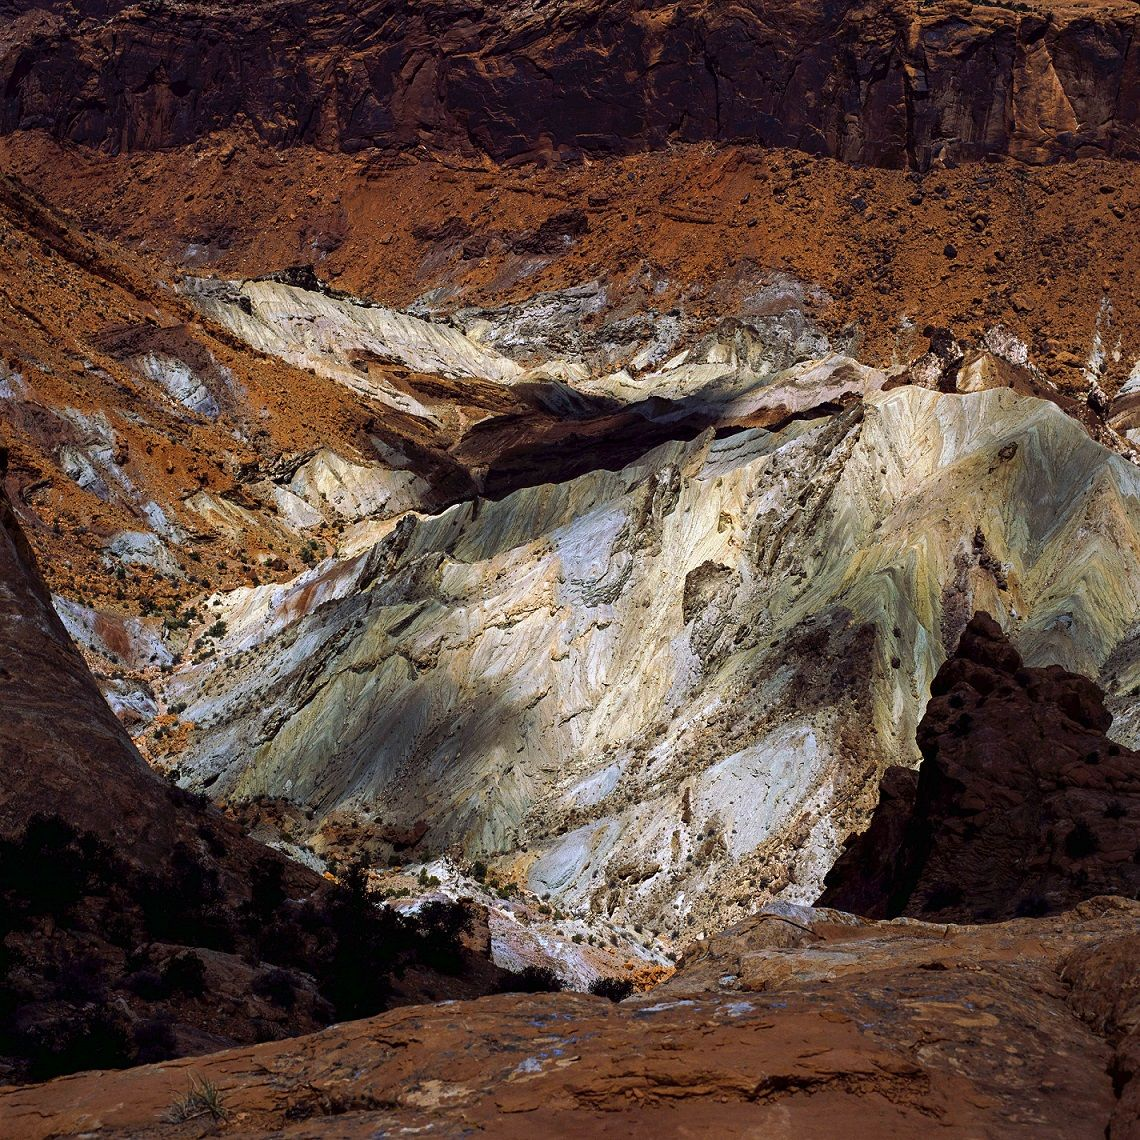 Crater, Série Fracture,Luca Marziale,Photography